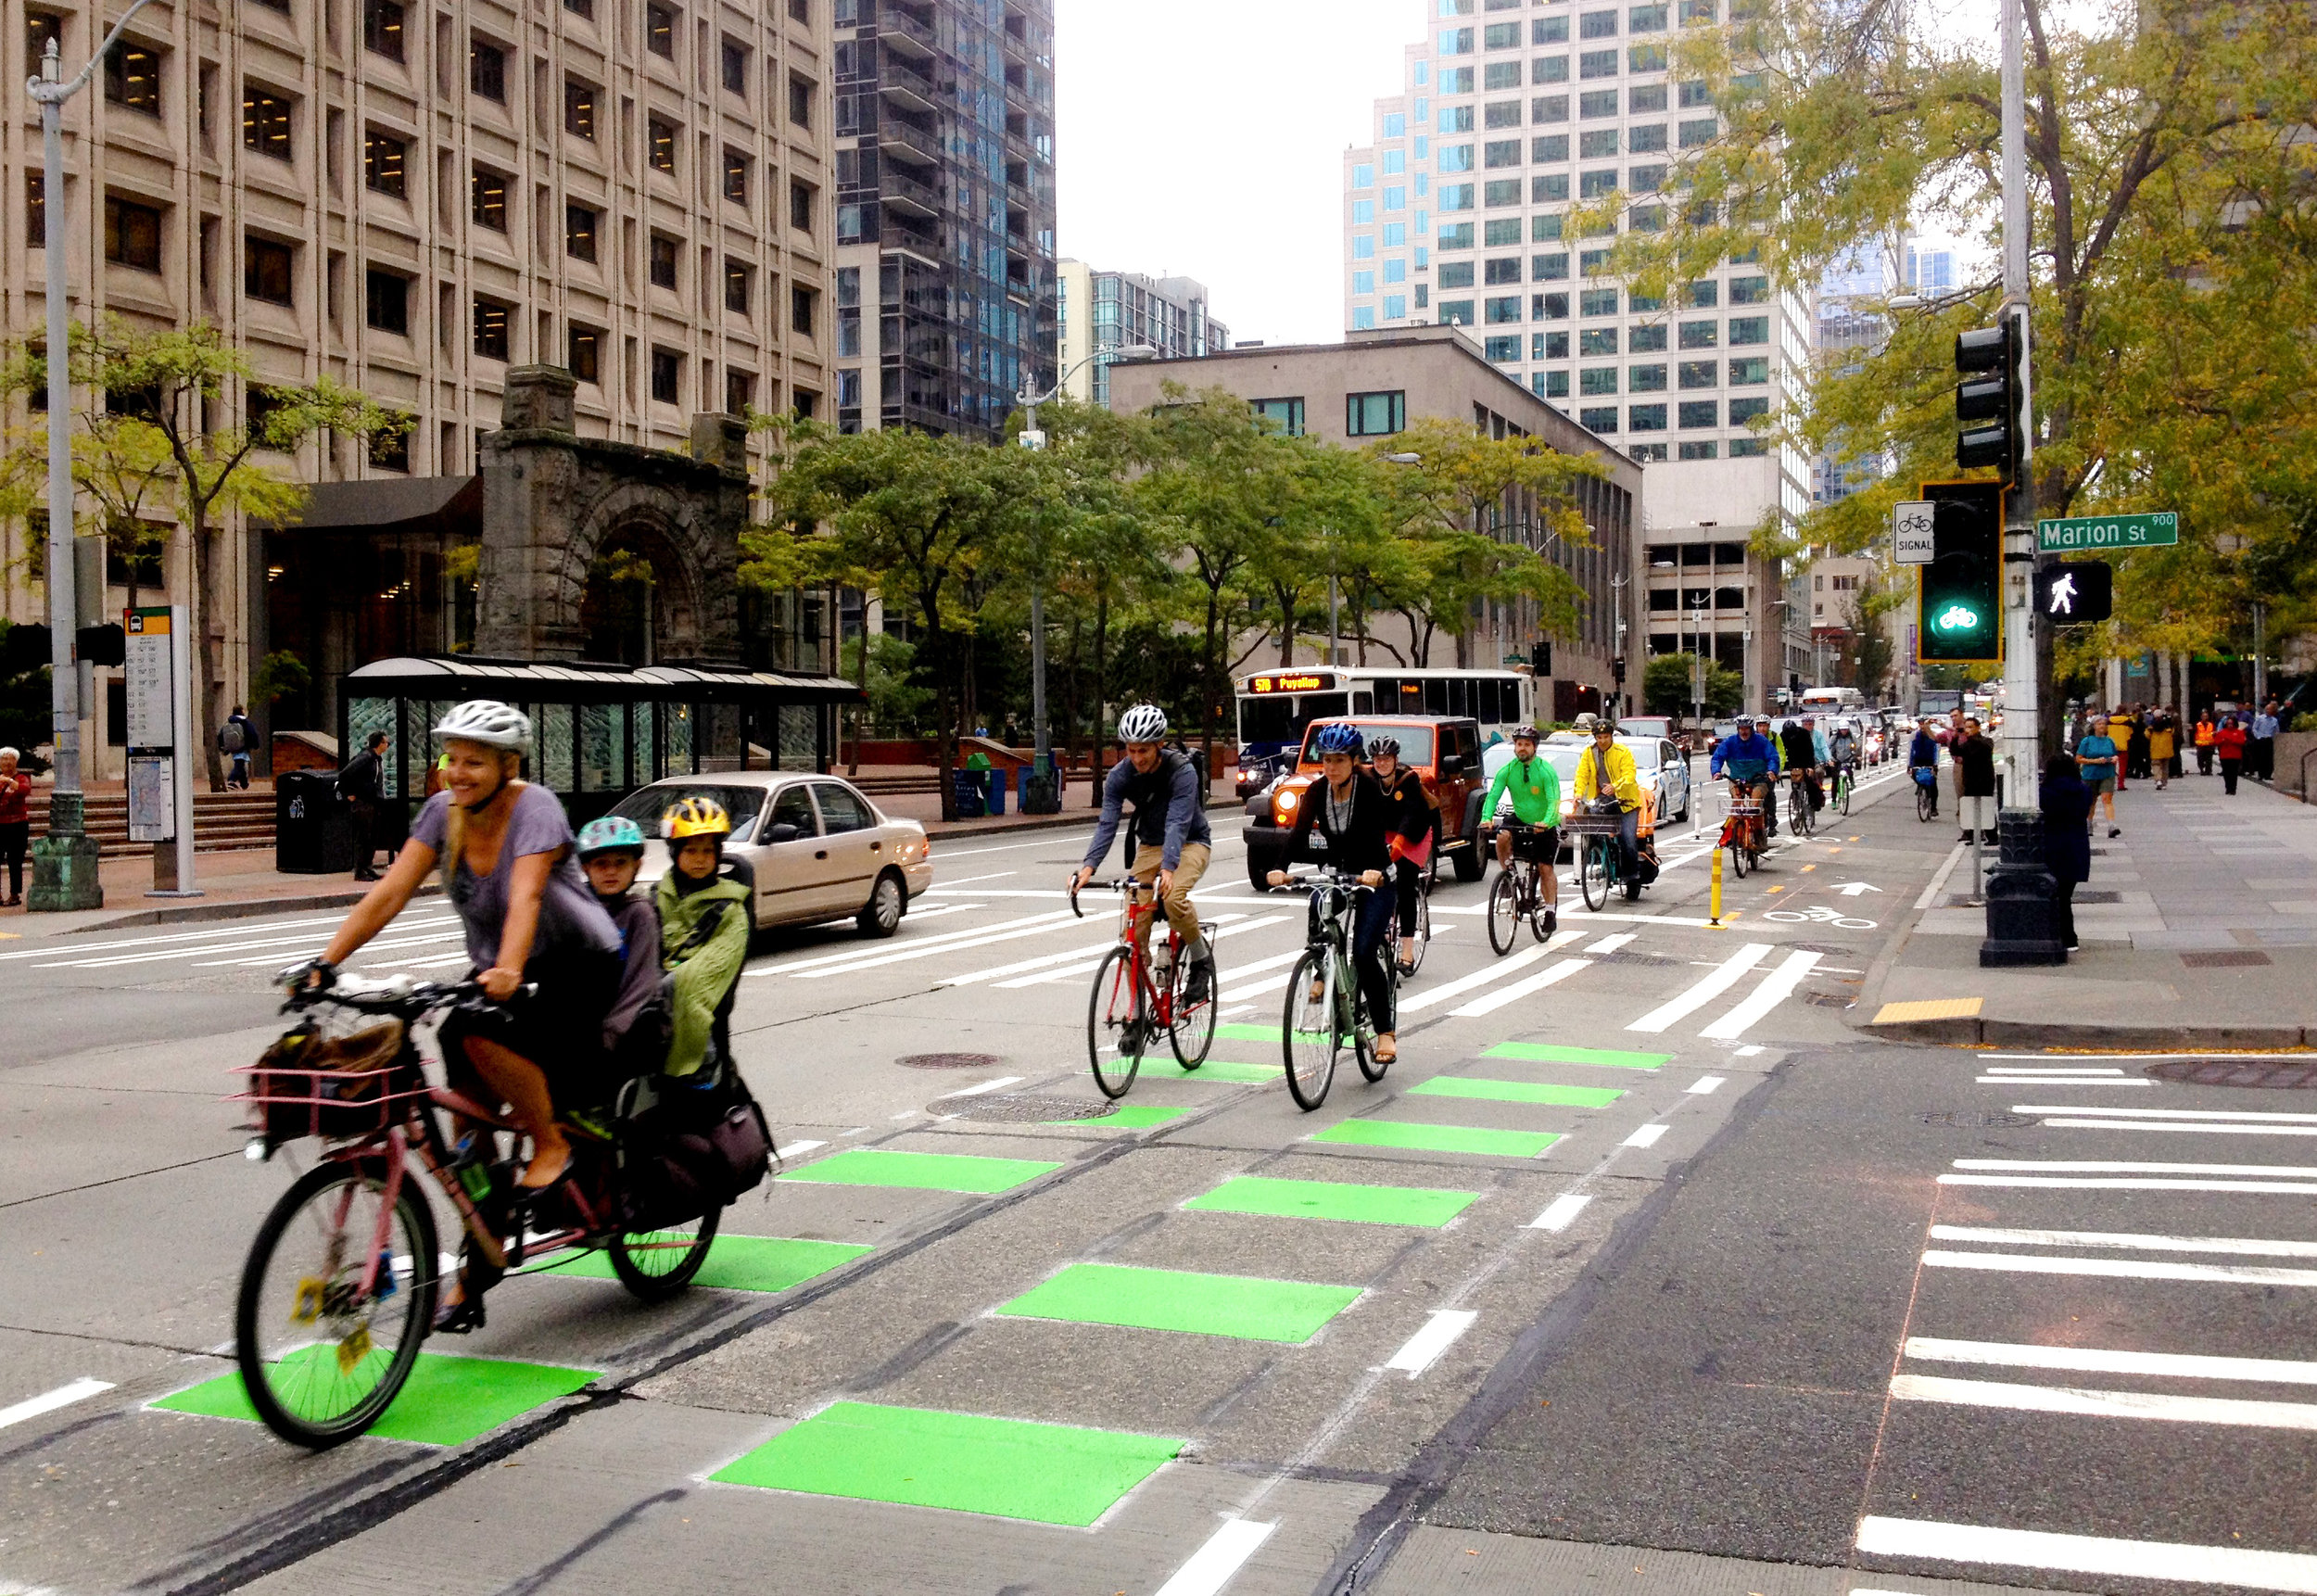 Bike lanes can get people out of cars.